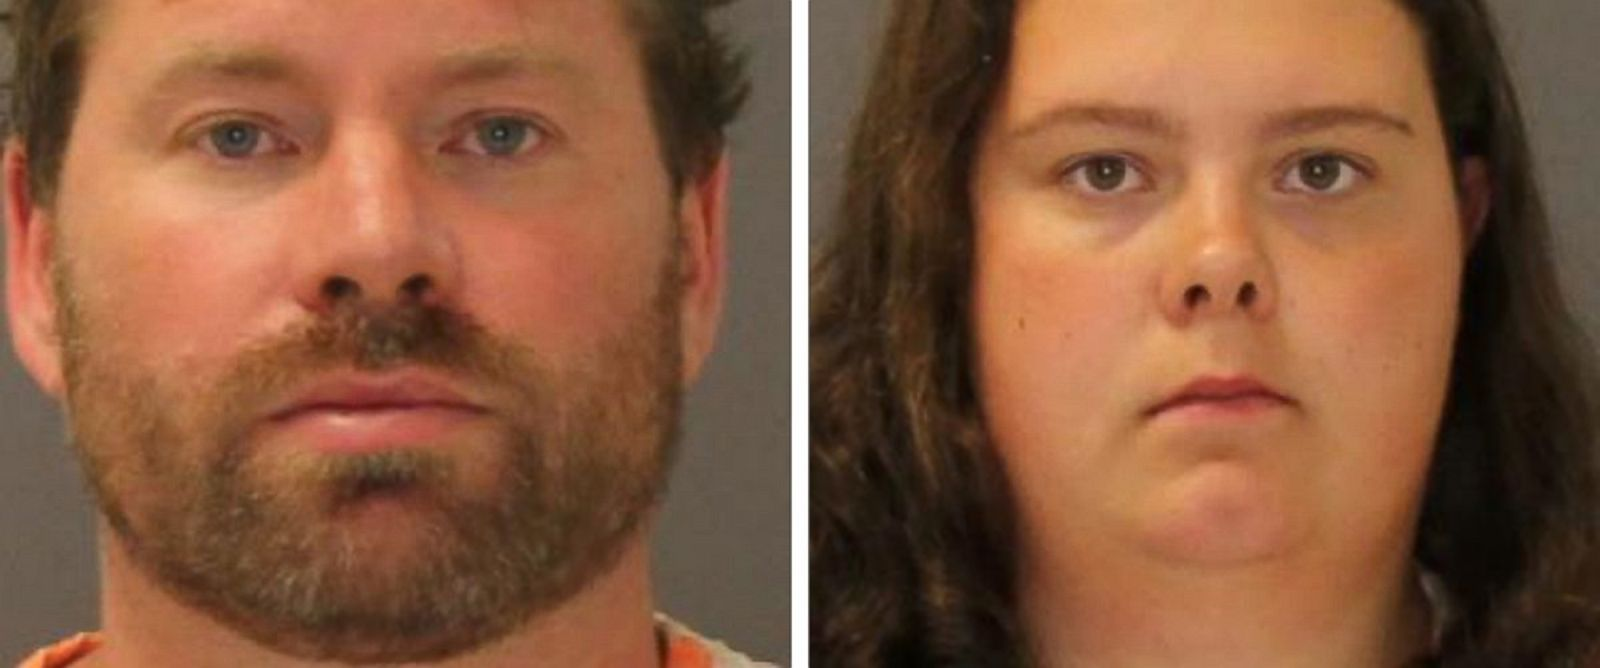 PHOTO: These images show the booking photo of Stephan Howells II, left, and Nicole Vaisey, who was arraigned Aug. 15, 2014 on charges they intended to physically harm or sexually abuse two Amish sisters after abducting them from a roadside farm stand.